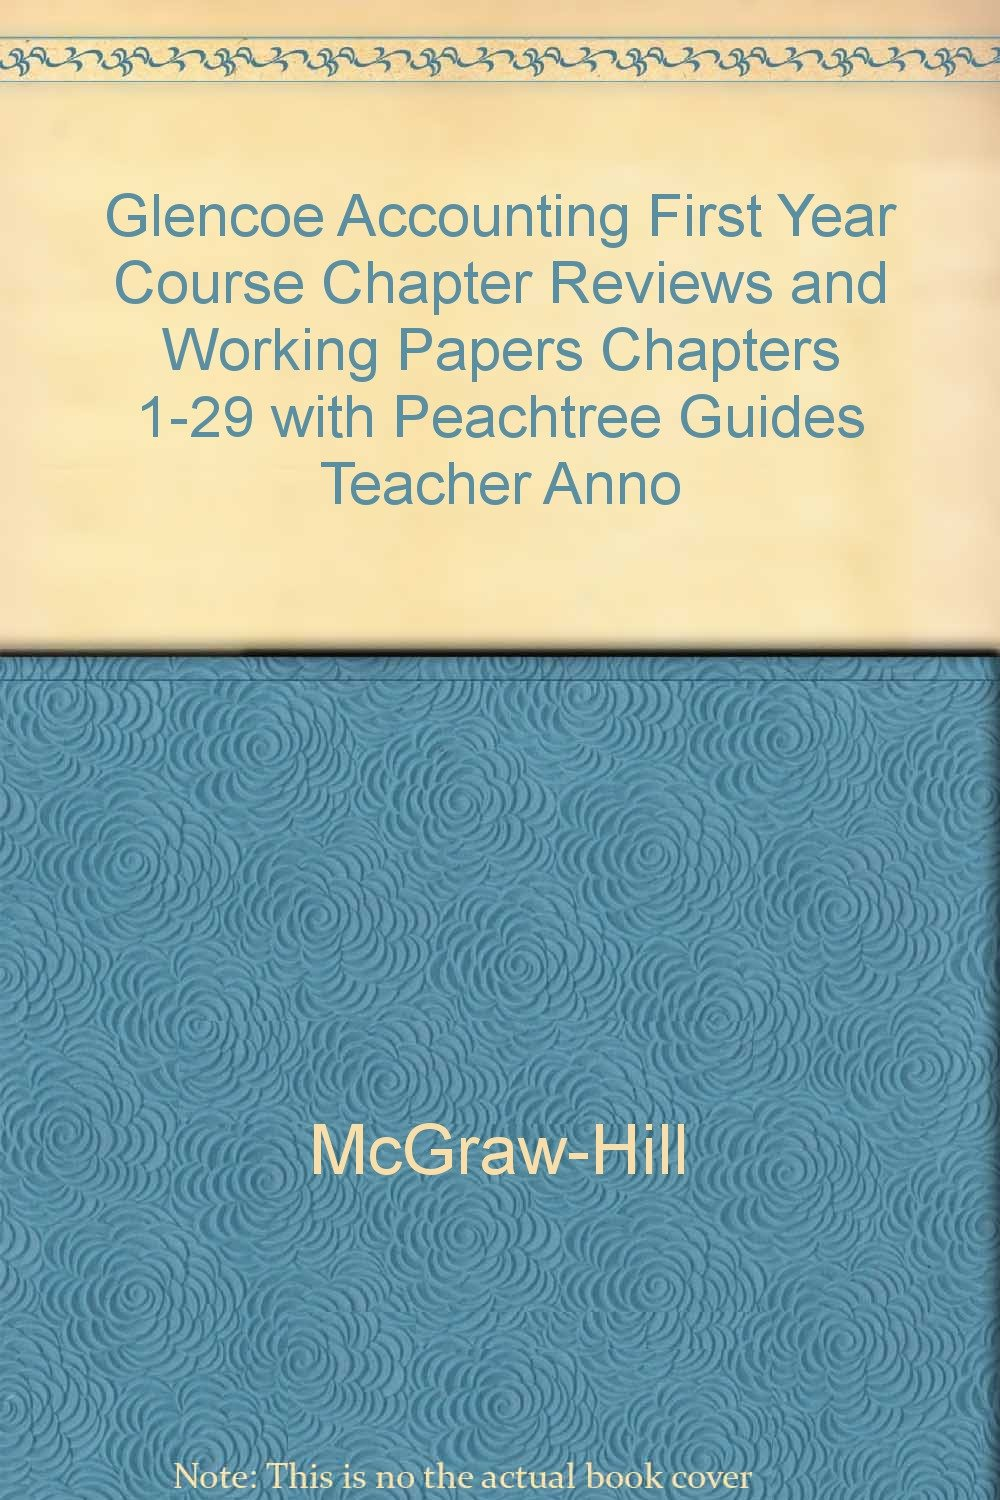 Accounting Real-world Applications and Connections First Year Course Ch.  Reviews and Working Papers: glencoe mcgraw hill: 9780078460999: Amazon.com:  Books